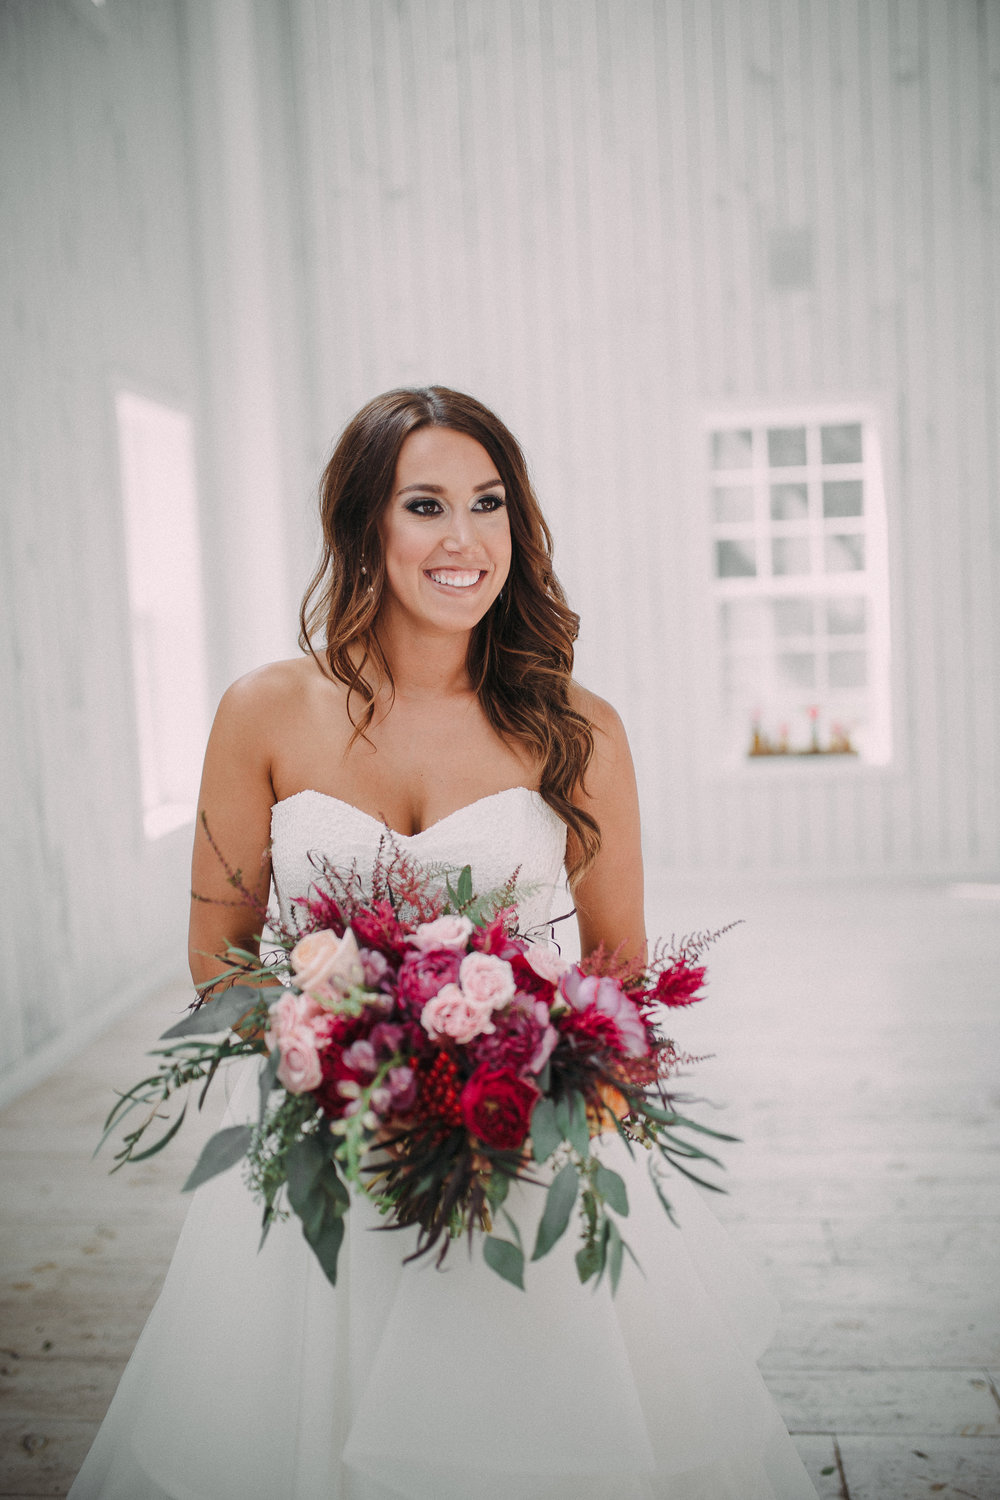 Check out Lauren and Ryan's at the White Sparrow barn below!